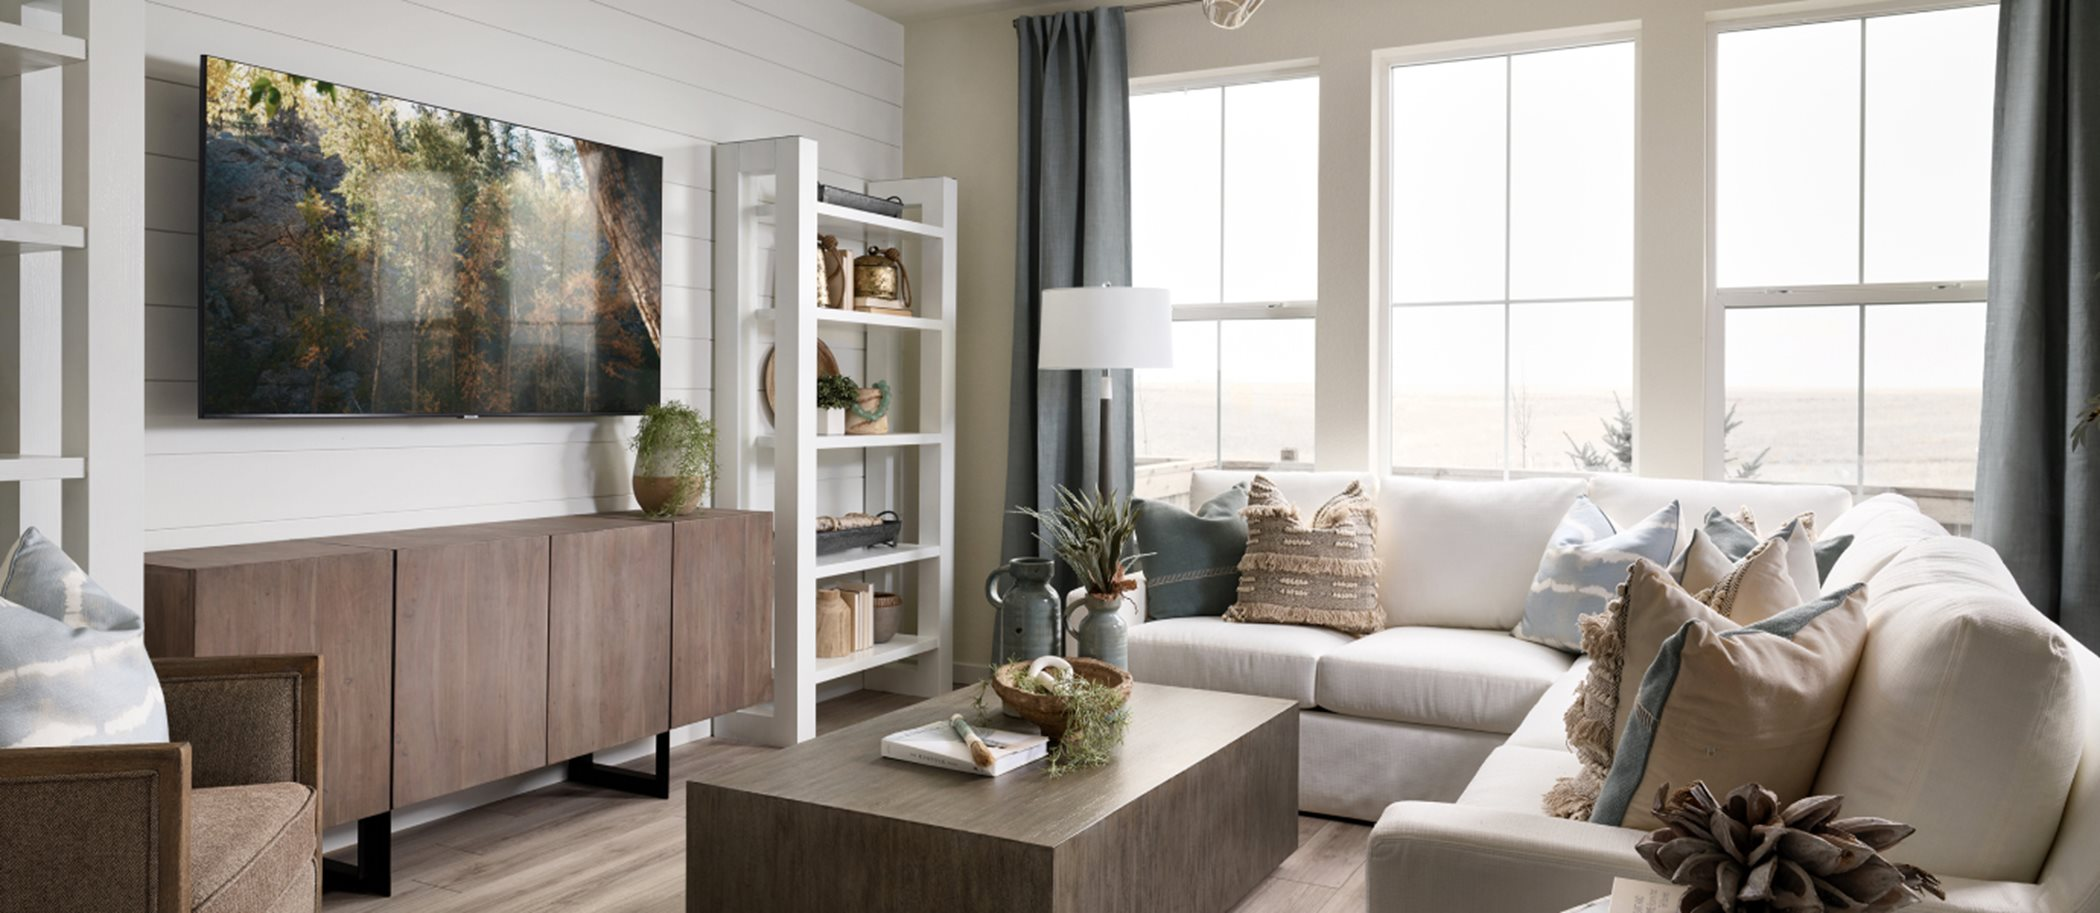 Palisade-Park-West Paired Homes Ascent Room